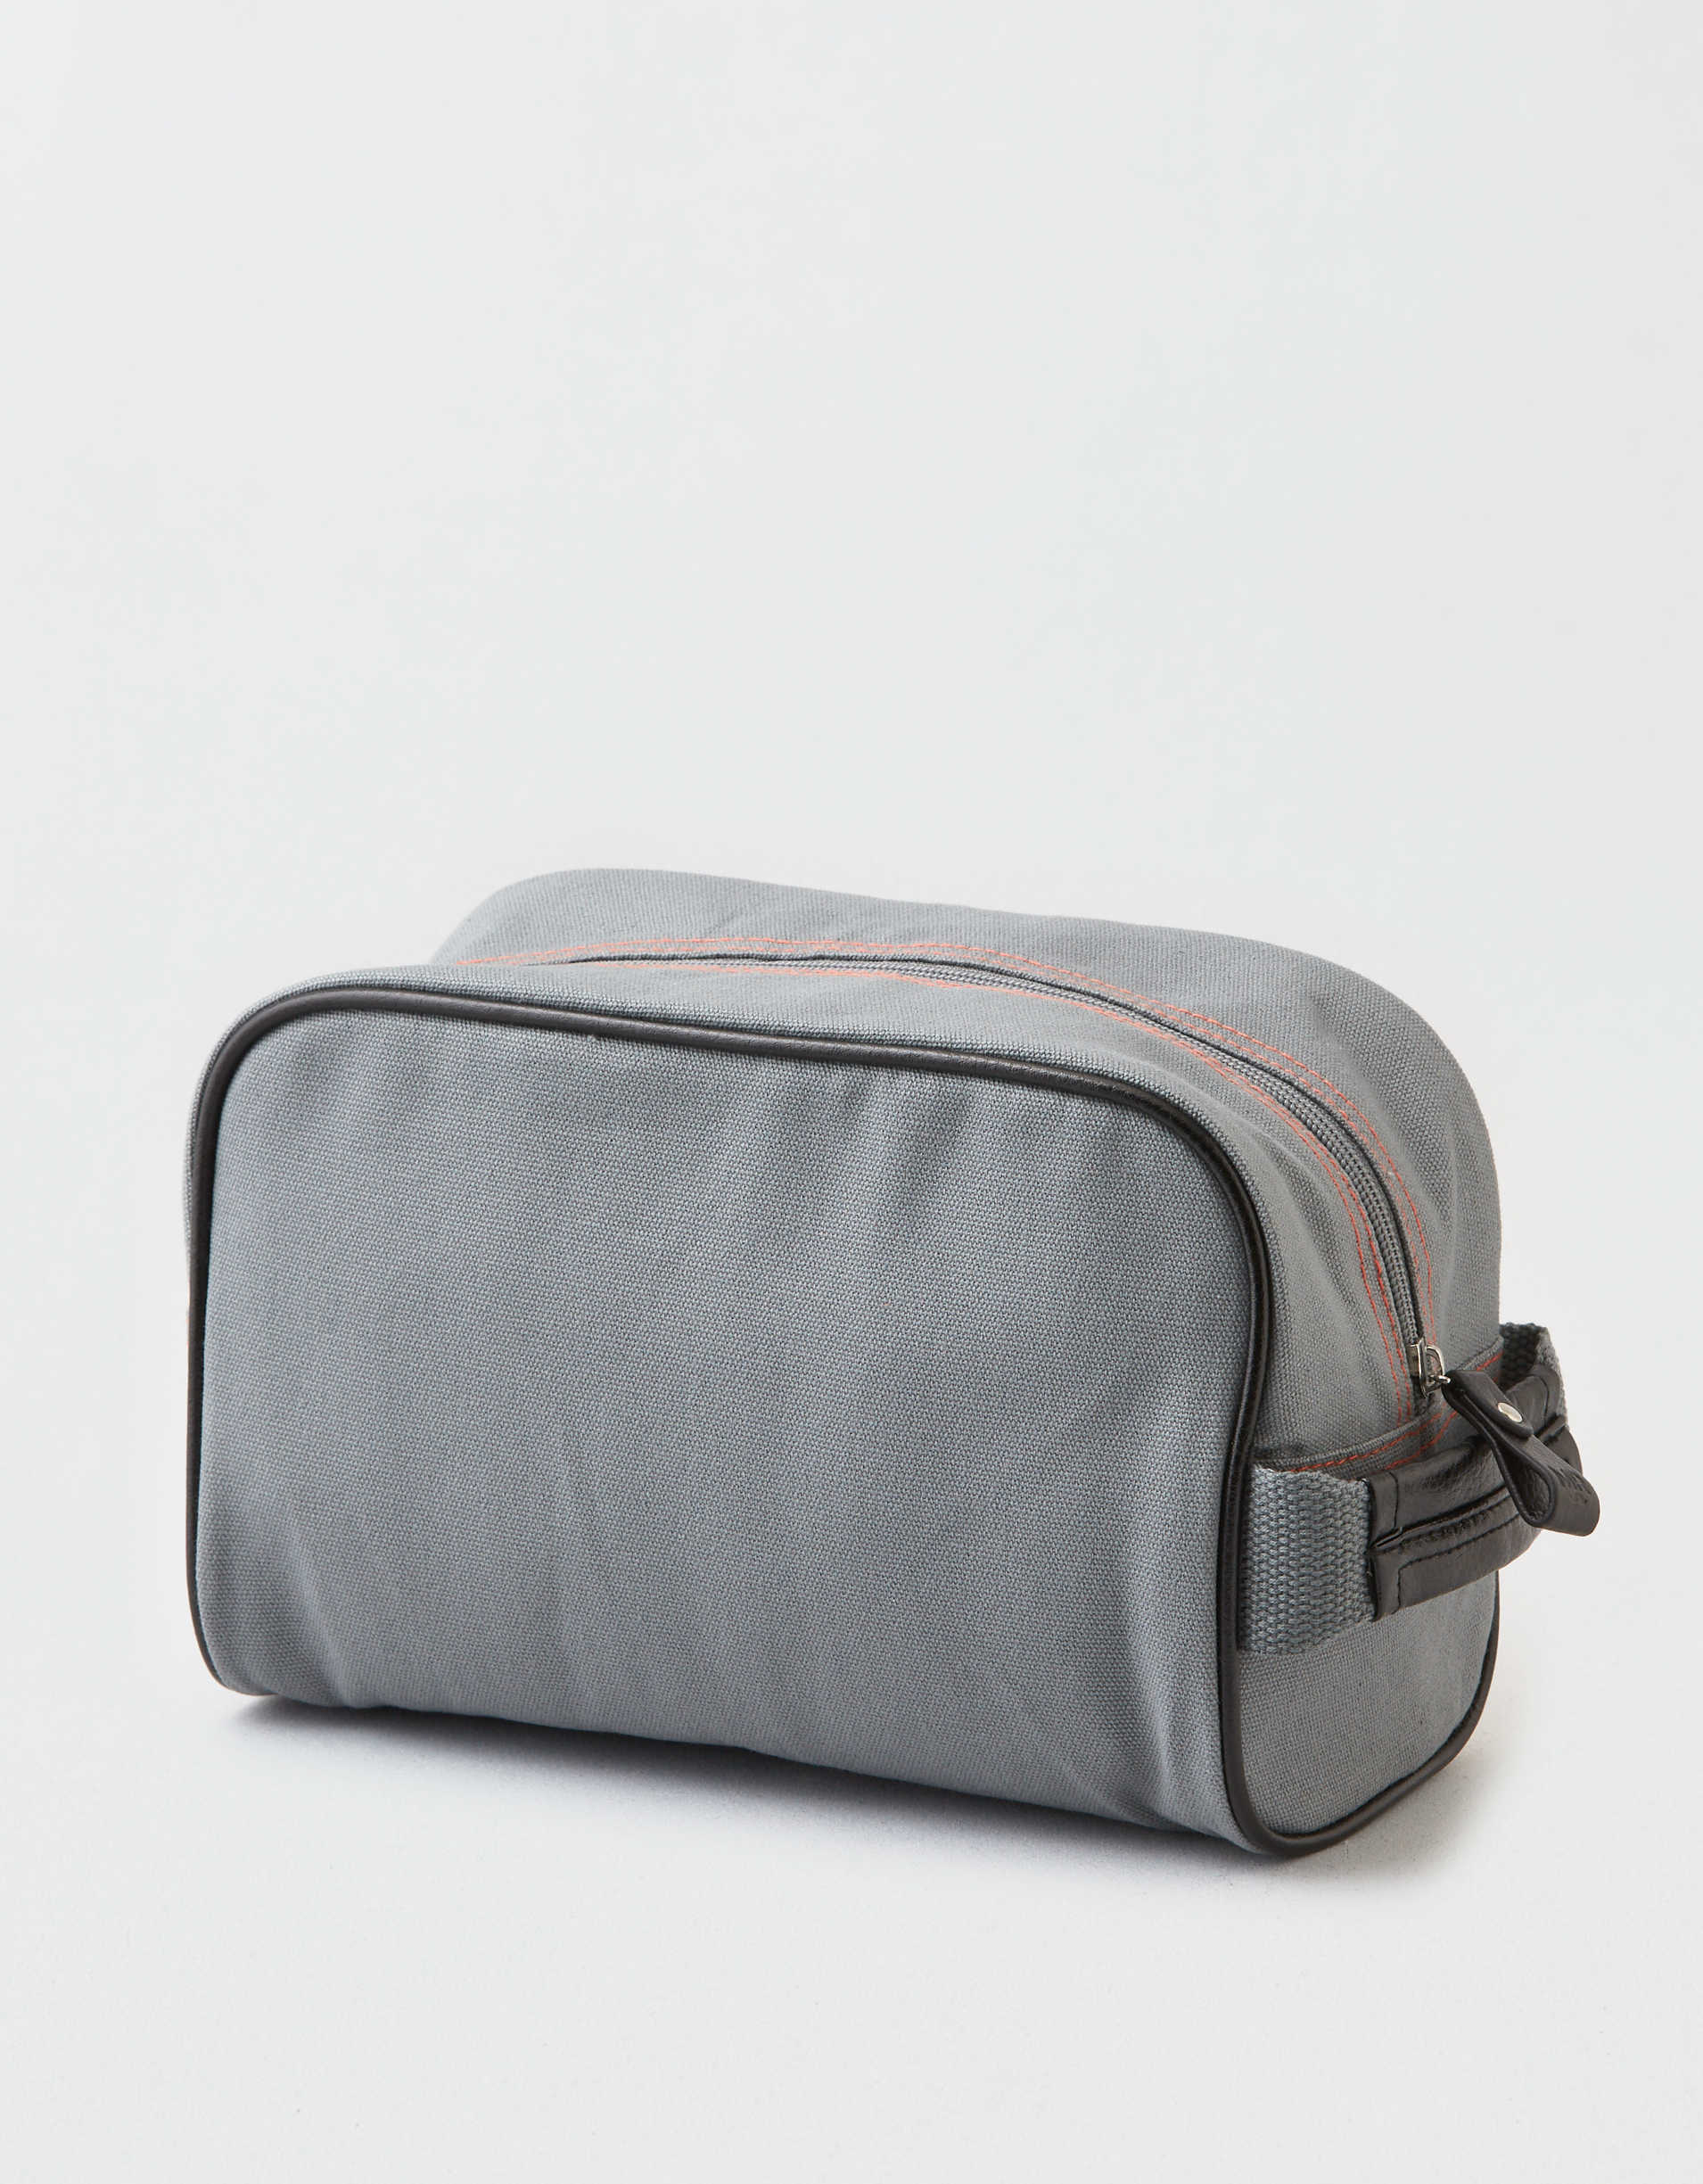 Mr. Manly Perfect Men's Toiletry Bag